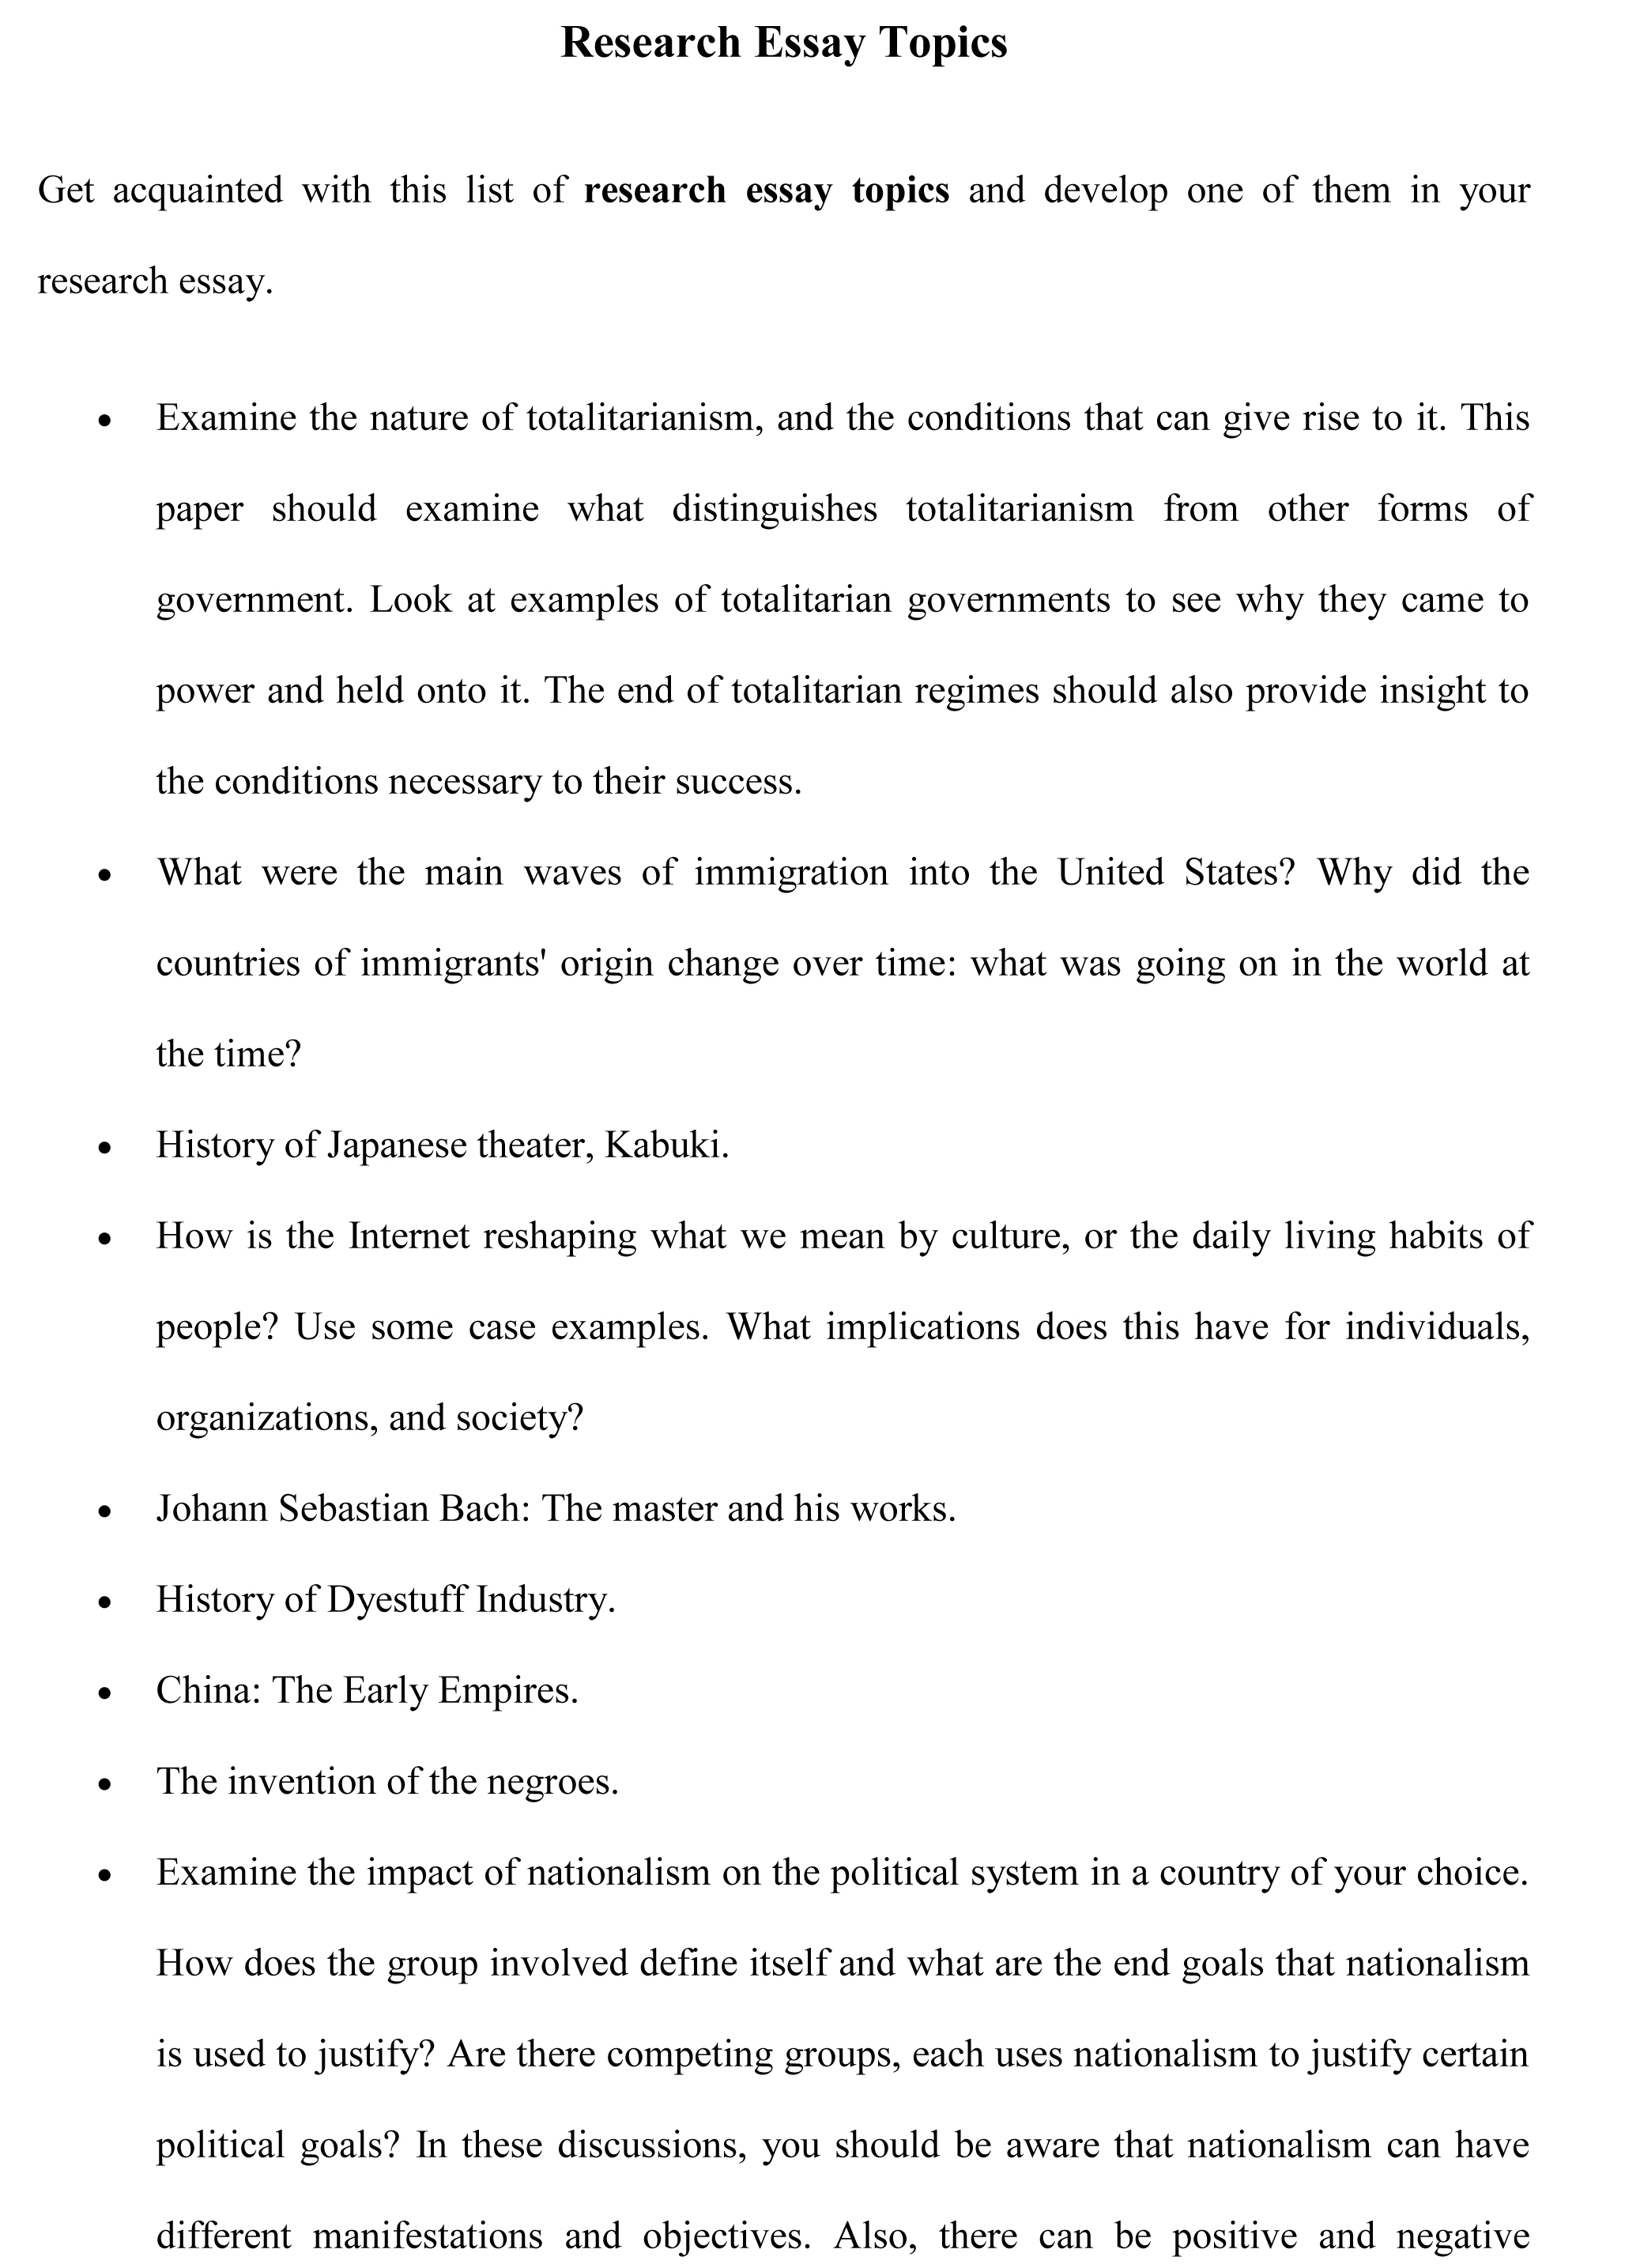 002 Research Essay Topics Sample Paper Unusual Ideas Topic For Developmental Psychology Unique High School American History Full